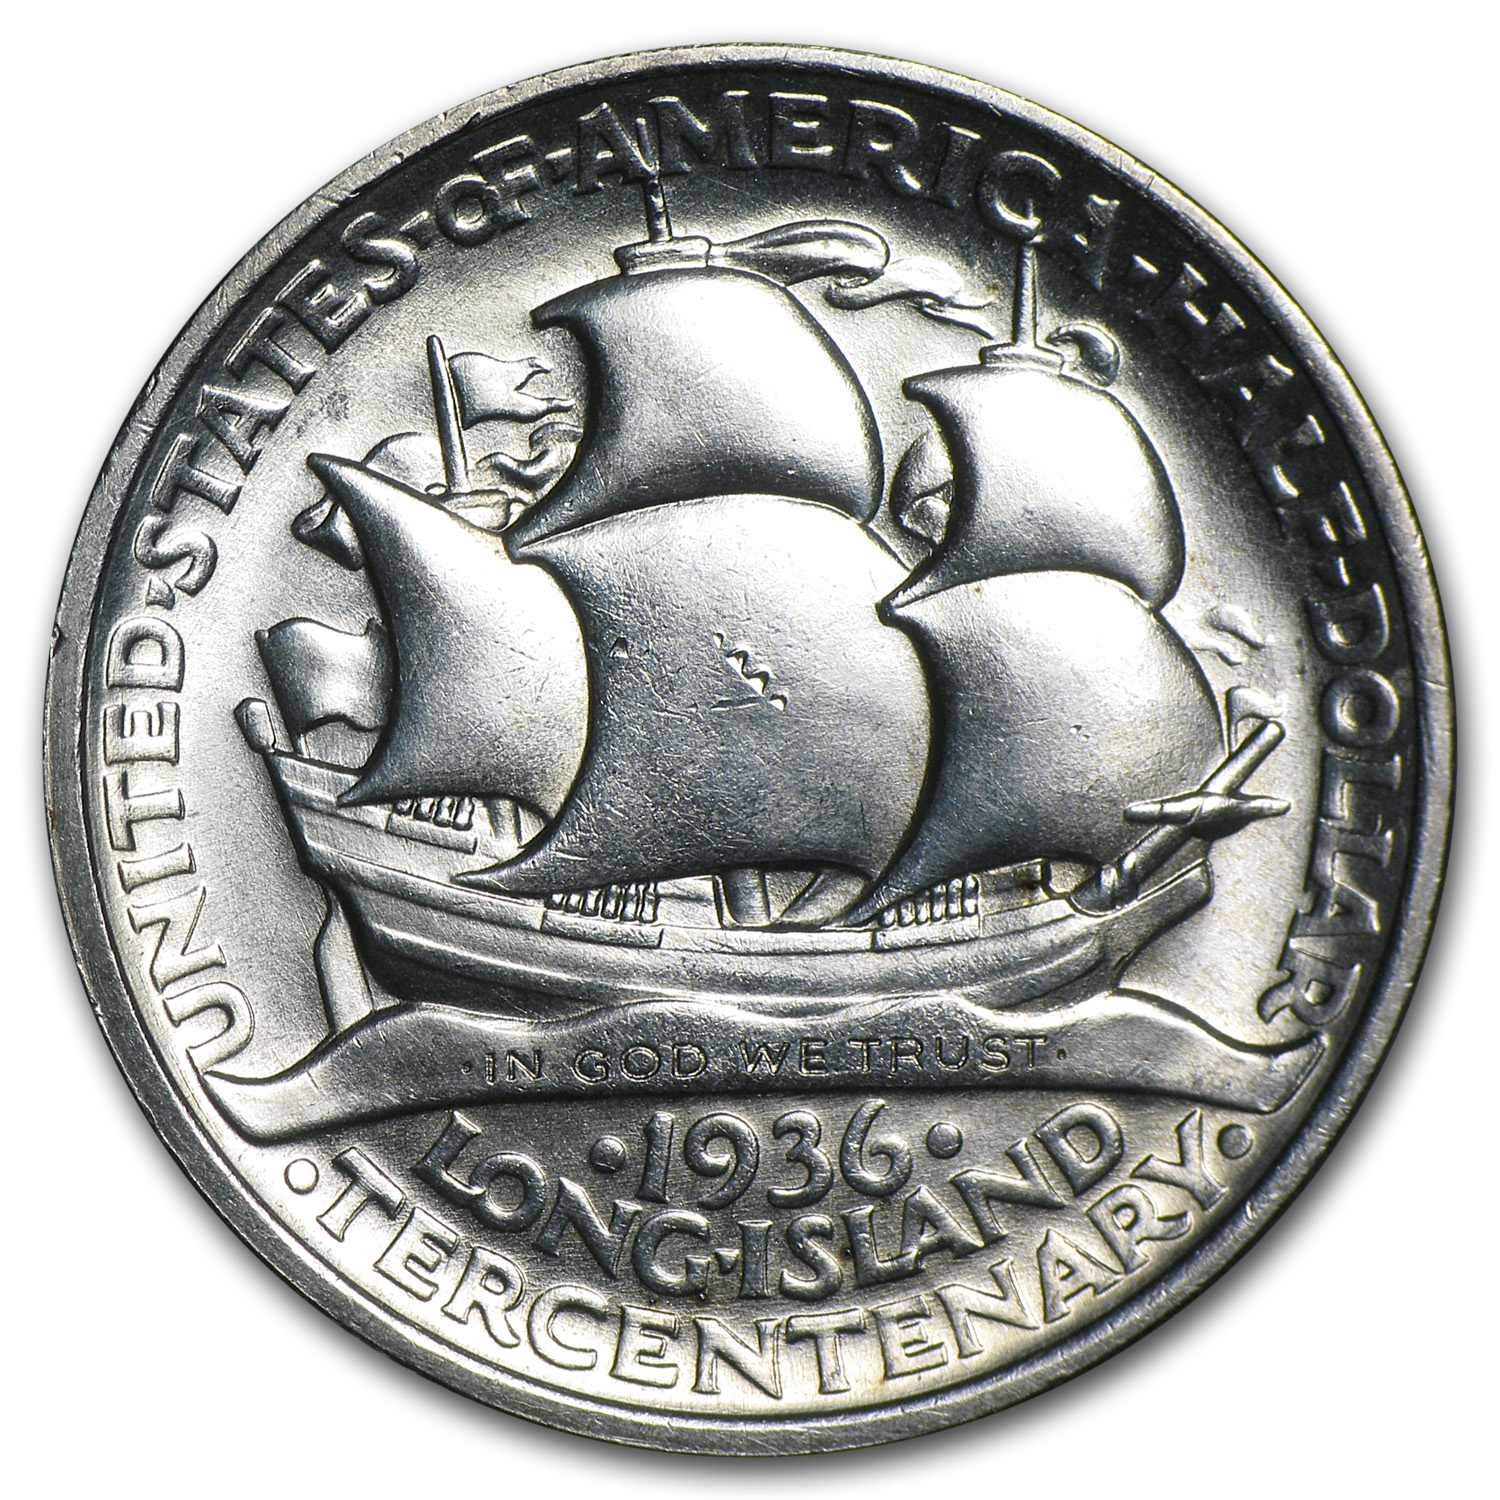 1936 Long Island Tercentenary Commem - Brilliant Uncirculated